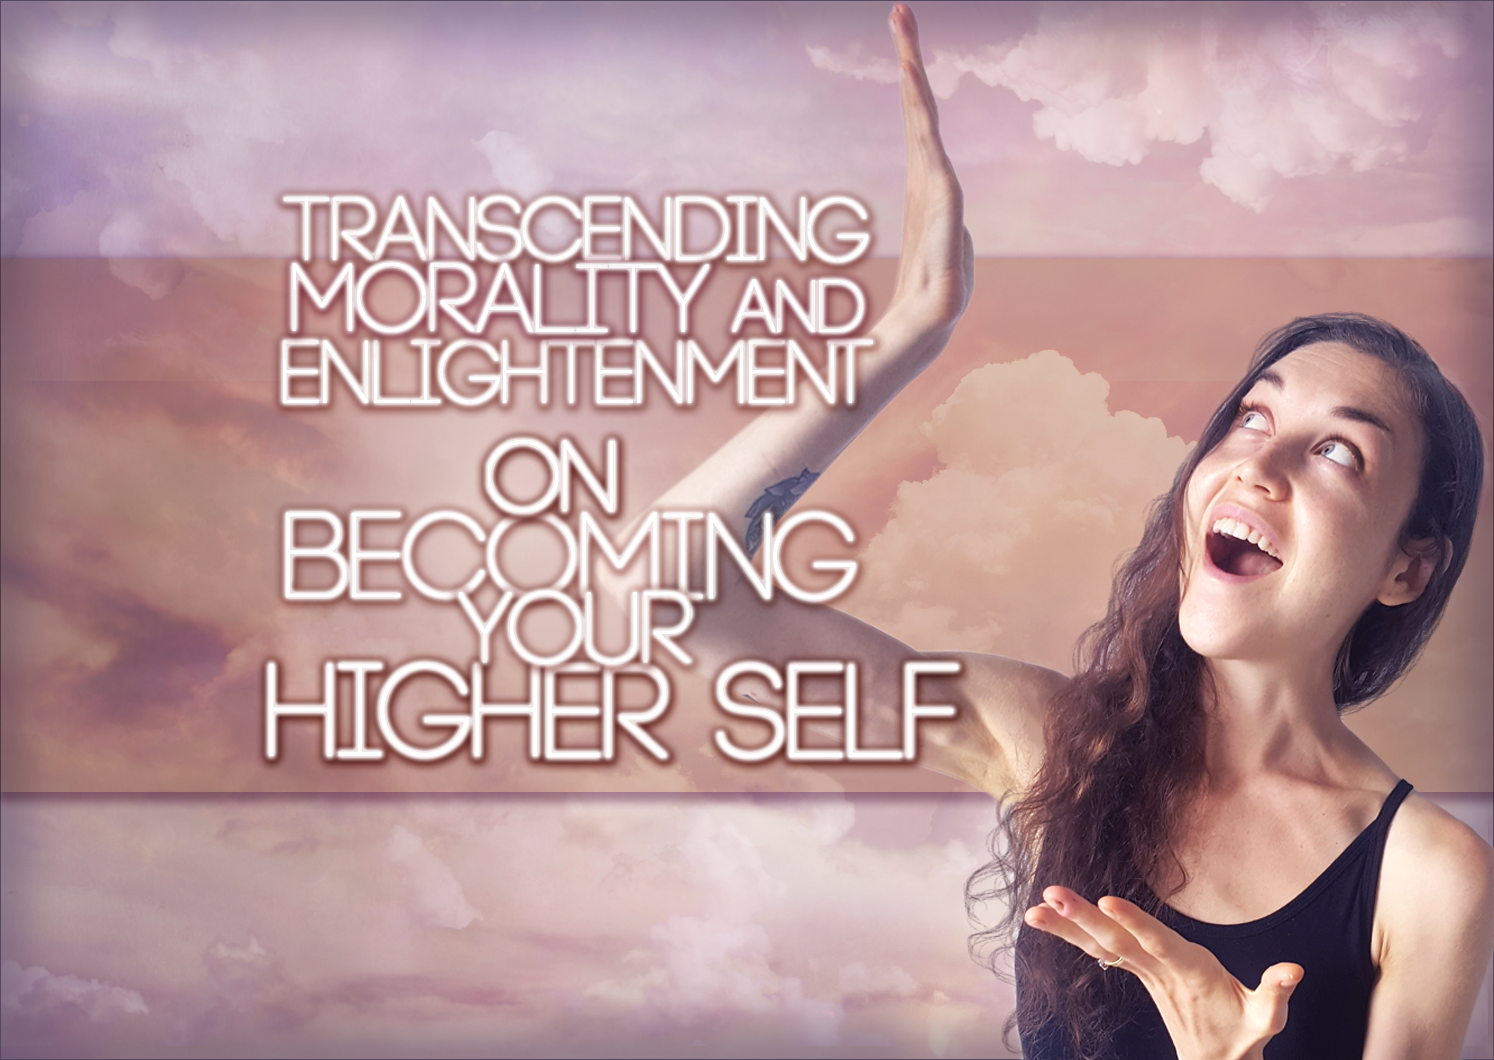 Transcending Morality and Enlightenment – On Becoming Your Higher Self: